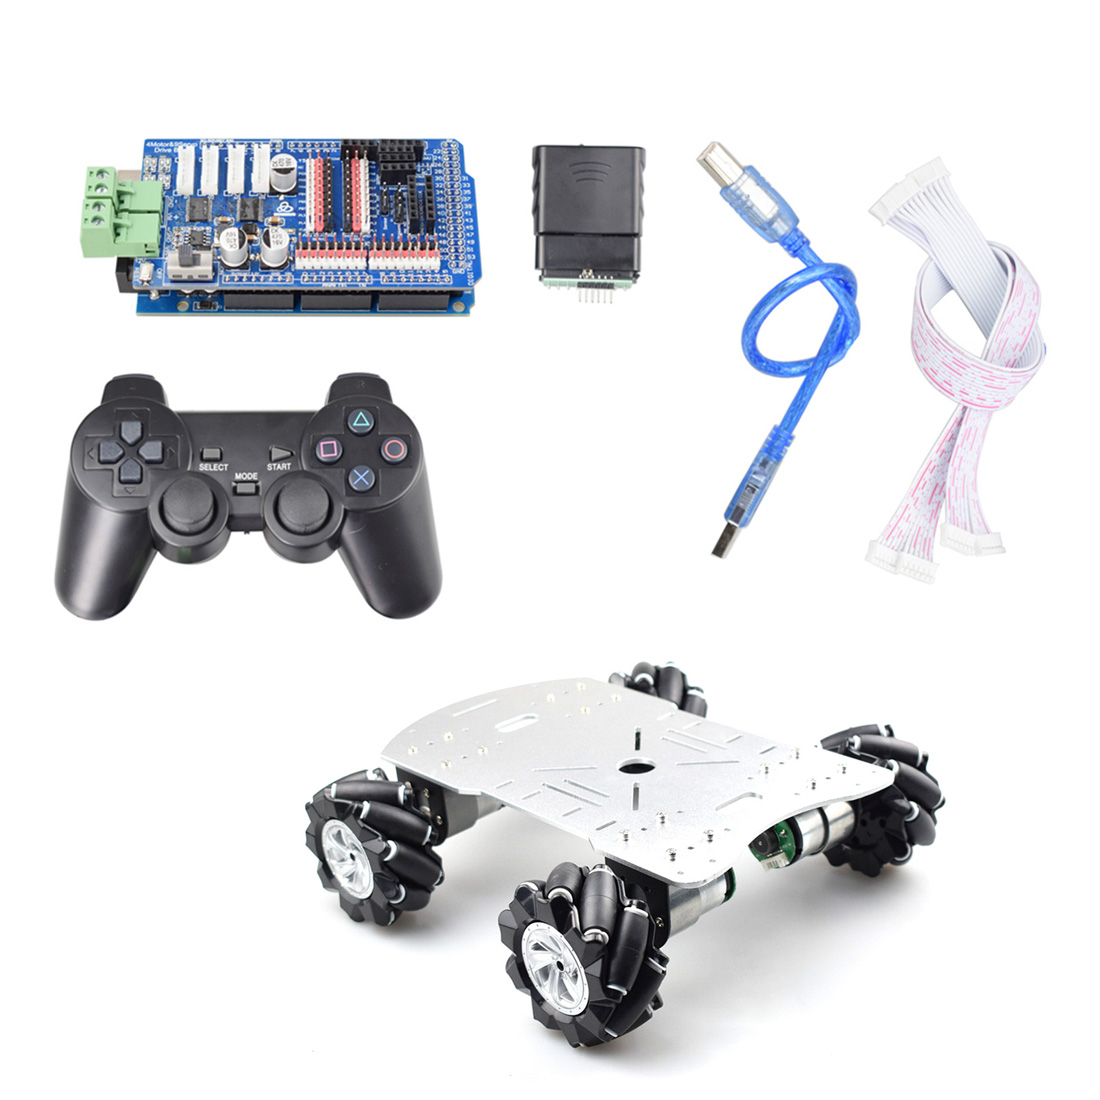 80mm Mecanum Metal Platform Omni-Directional Mecanum Wheel Robot Car With Arduino MEGA Electronic Control (Without Power Supply)